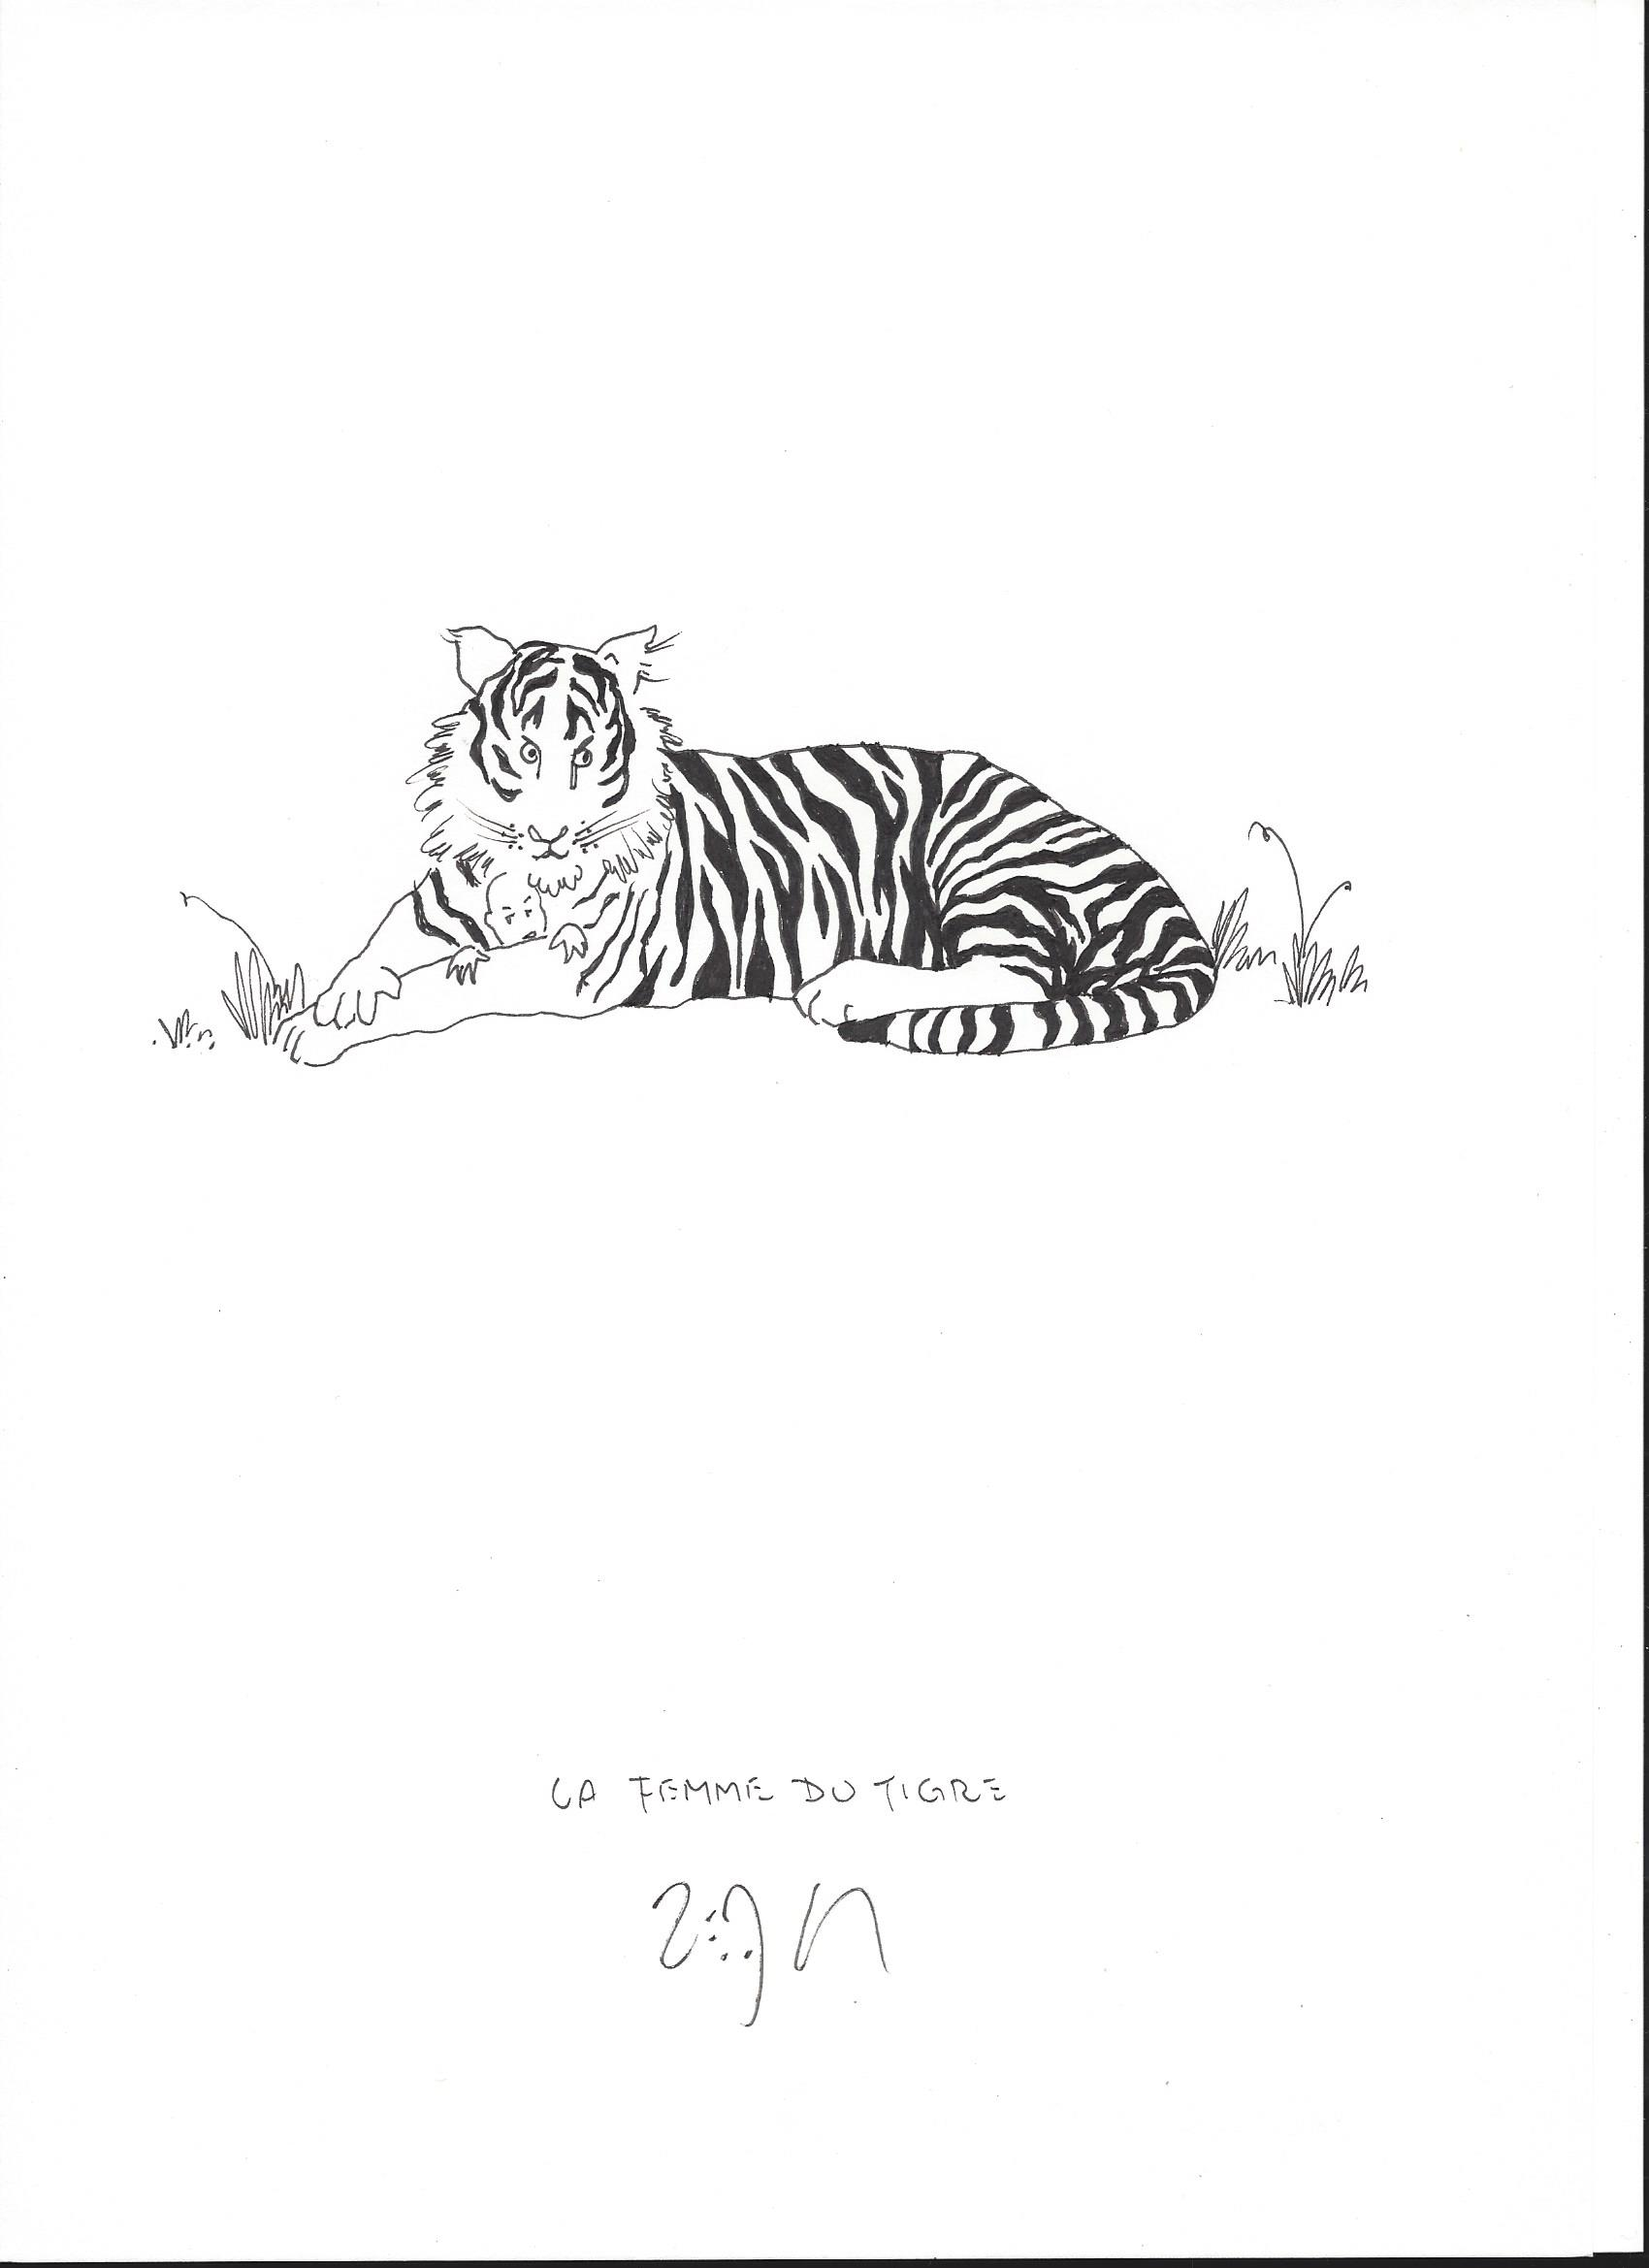 « The tiger's wife – La femme du tigre »